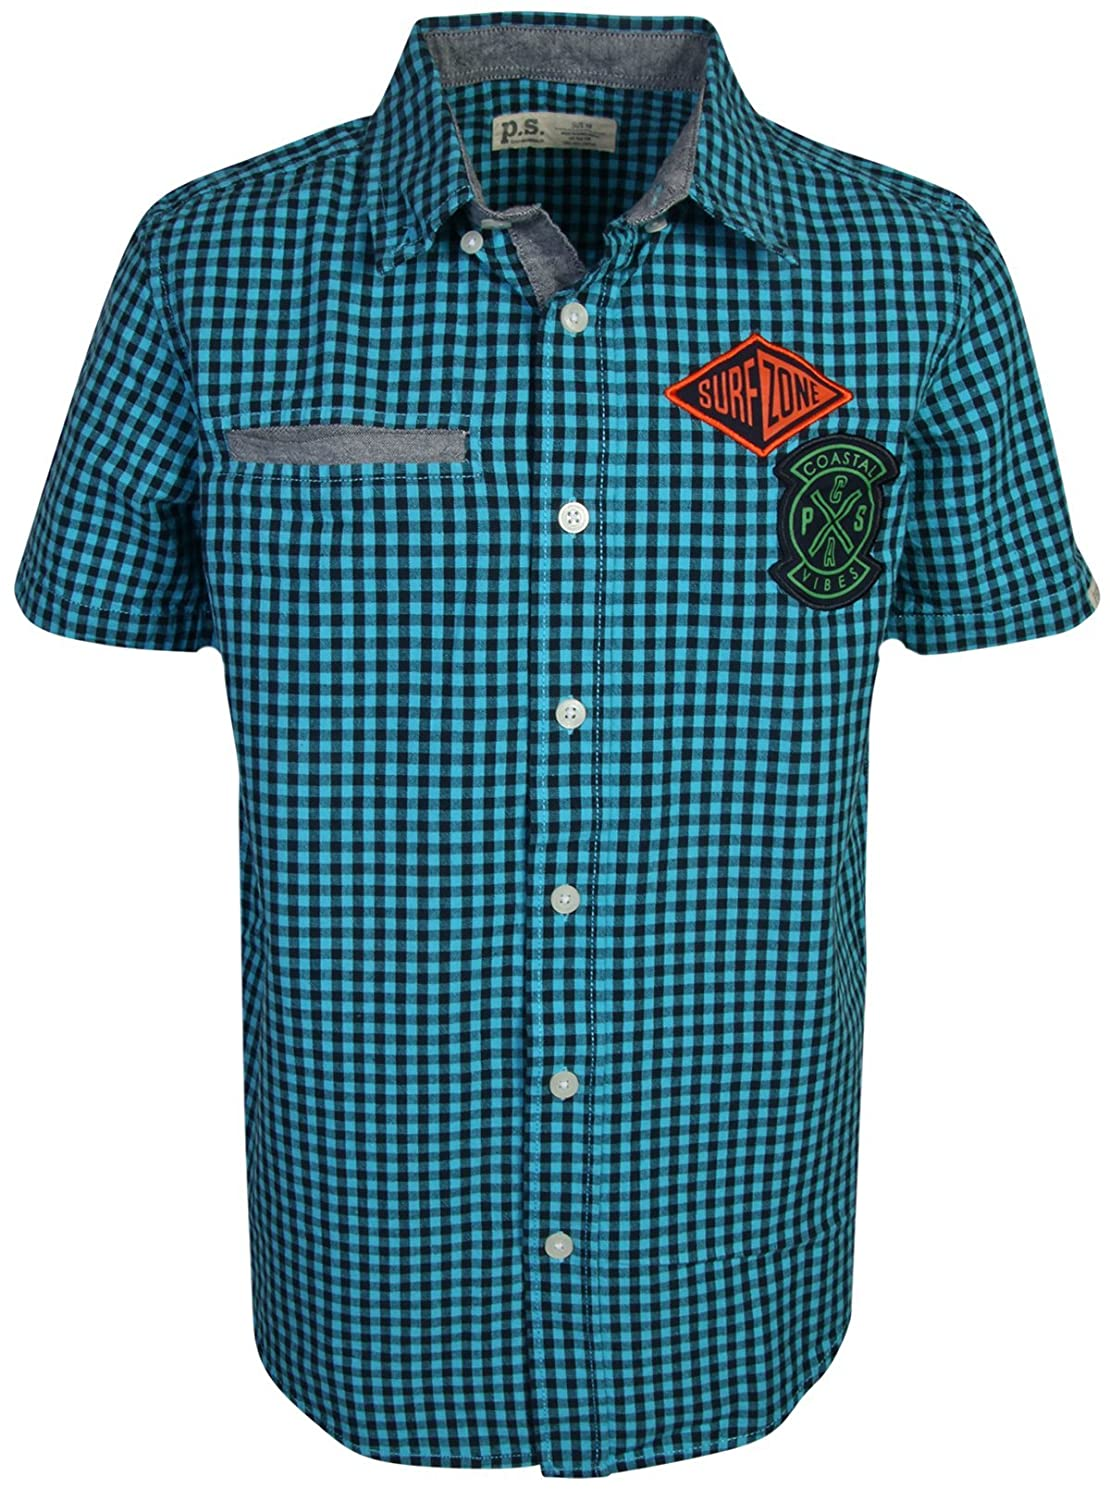 p.s from aeropostale Boys Short Sleeve Button Down Woven Shirt